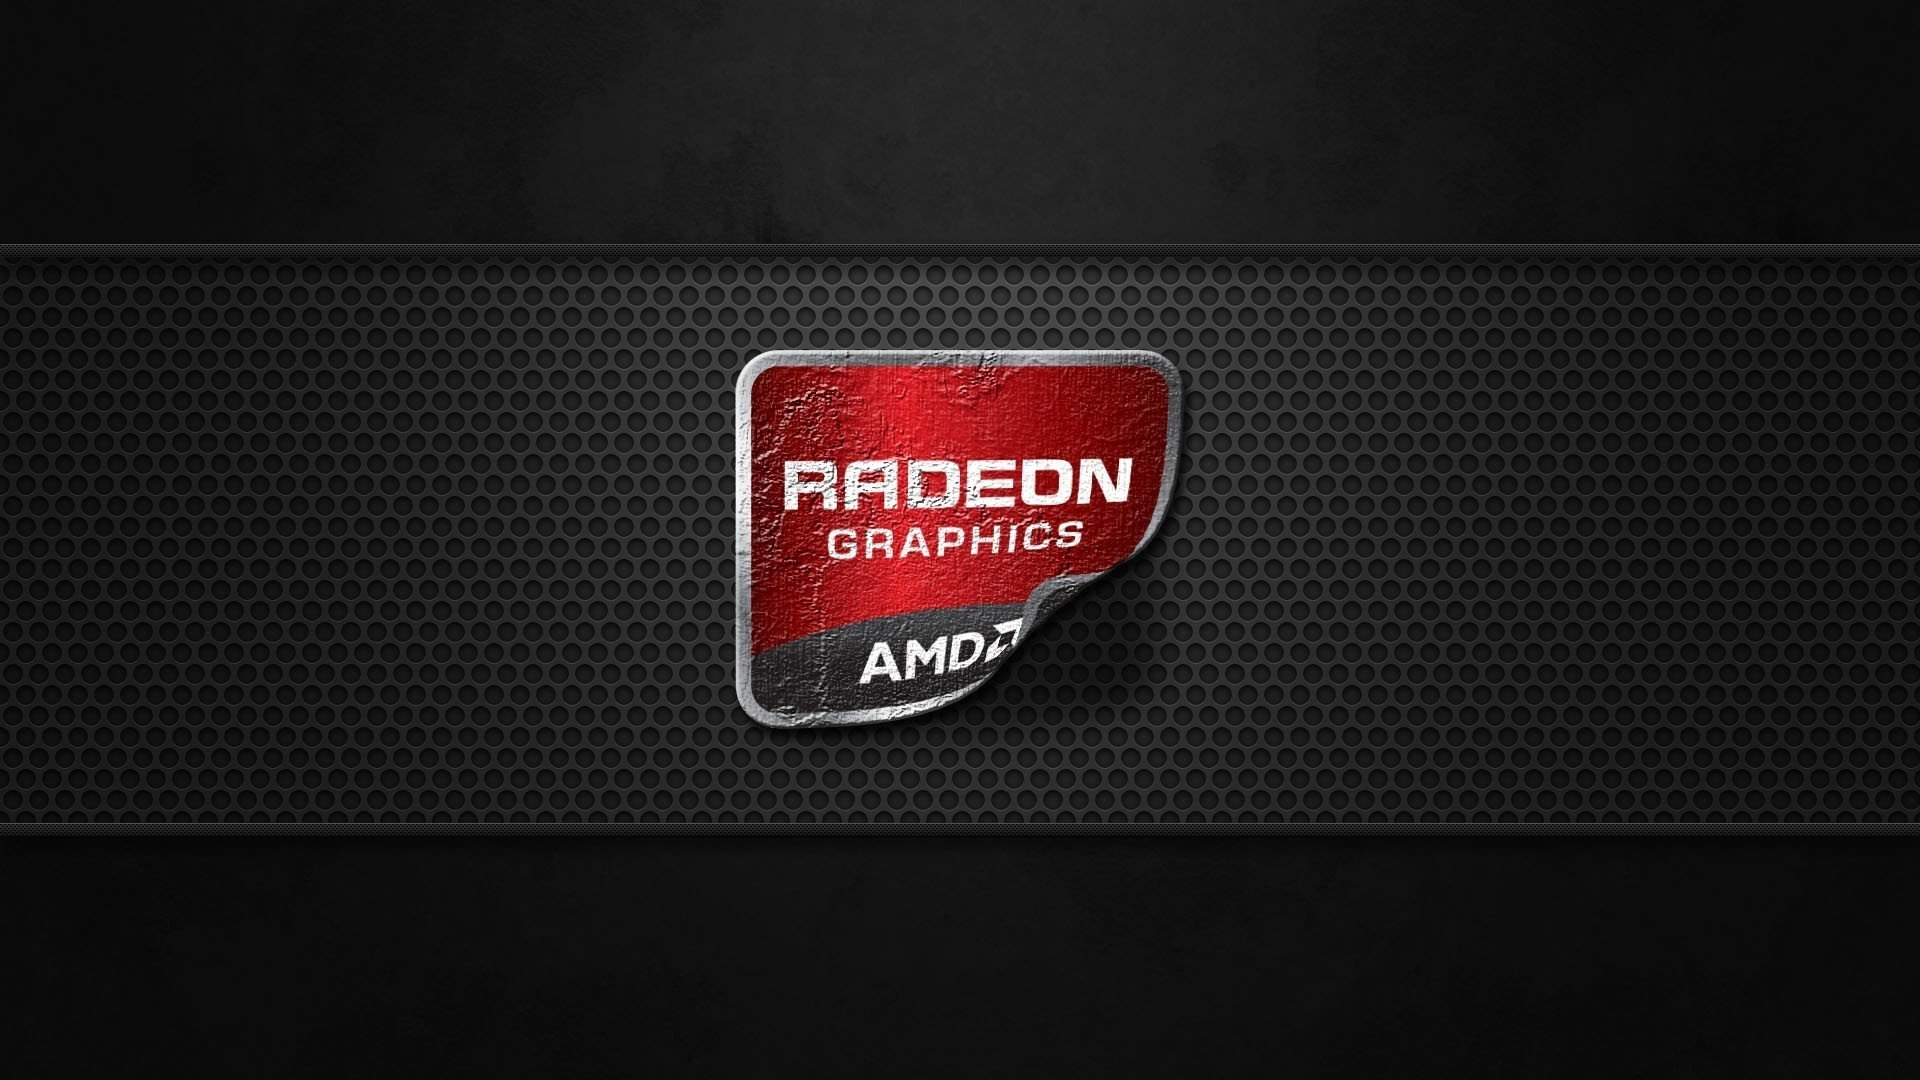 AMD wallpapers 1920x1080 Full HD (1080p